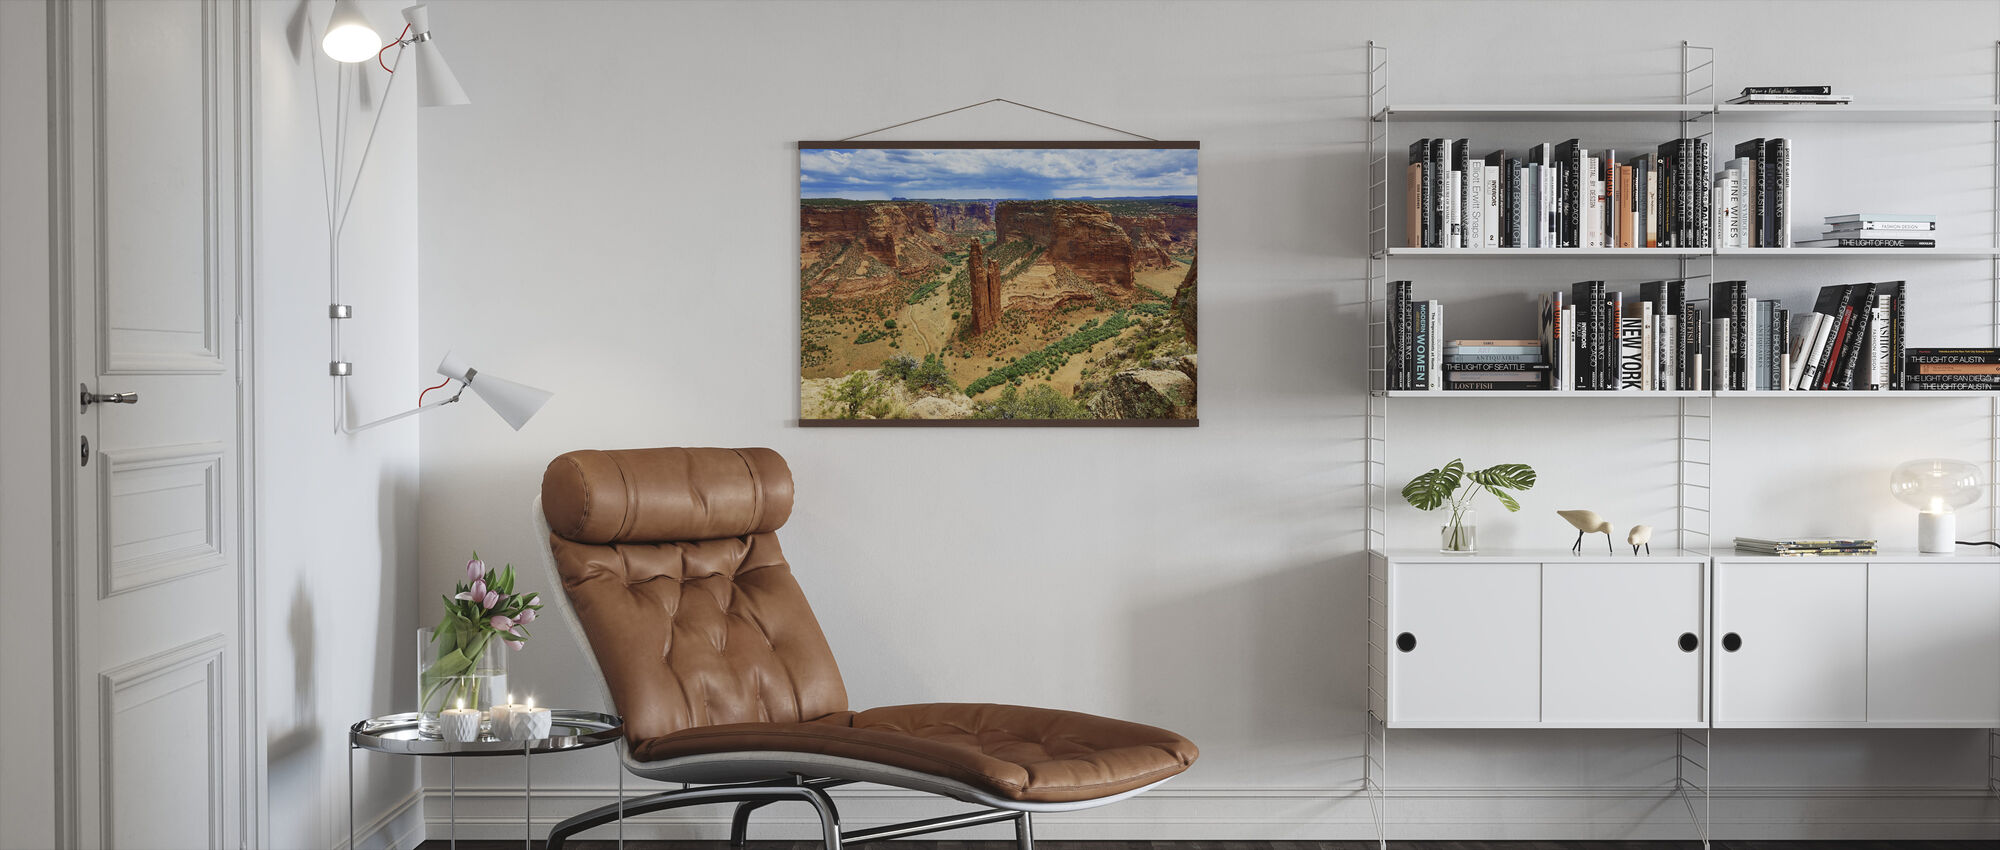 De Chelly Sandstone - Poster - Living Room